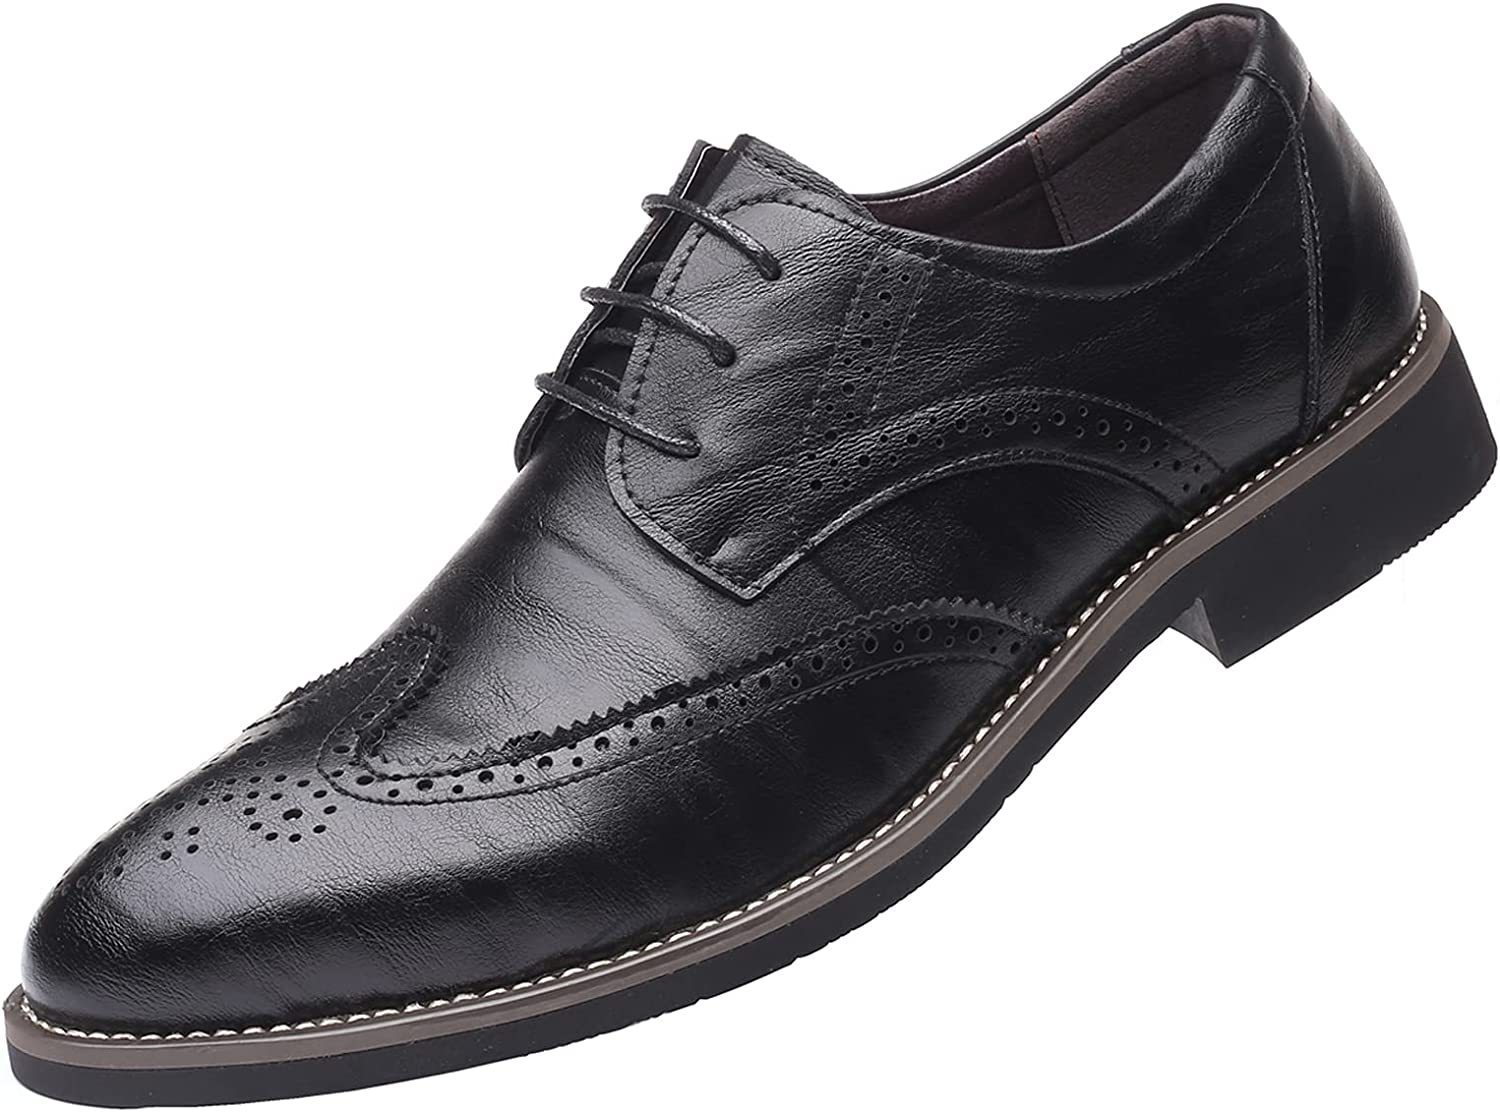 Men's Manmade Leather Lace-up Wedding Business Formal Dress Wingtips Brogue Shoes Oxfords